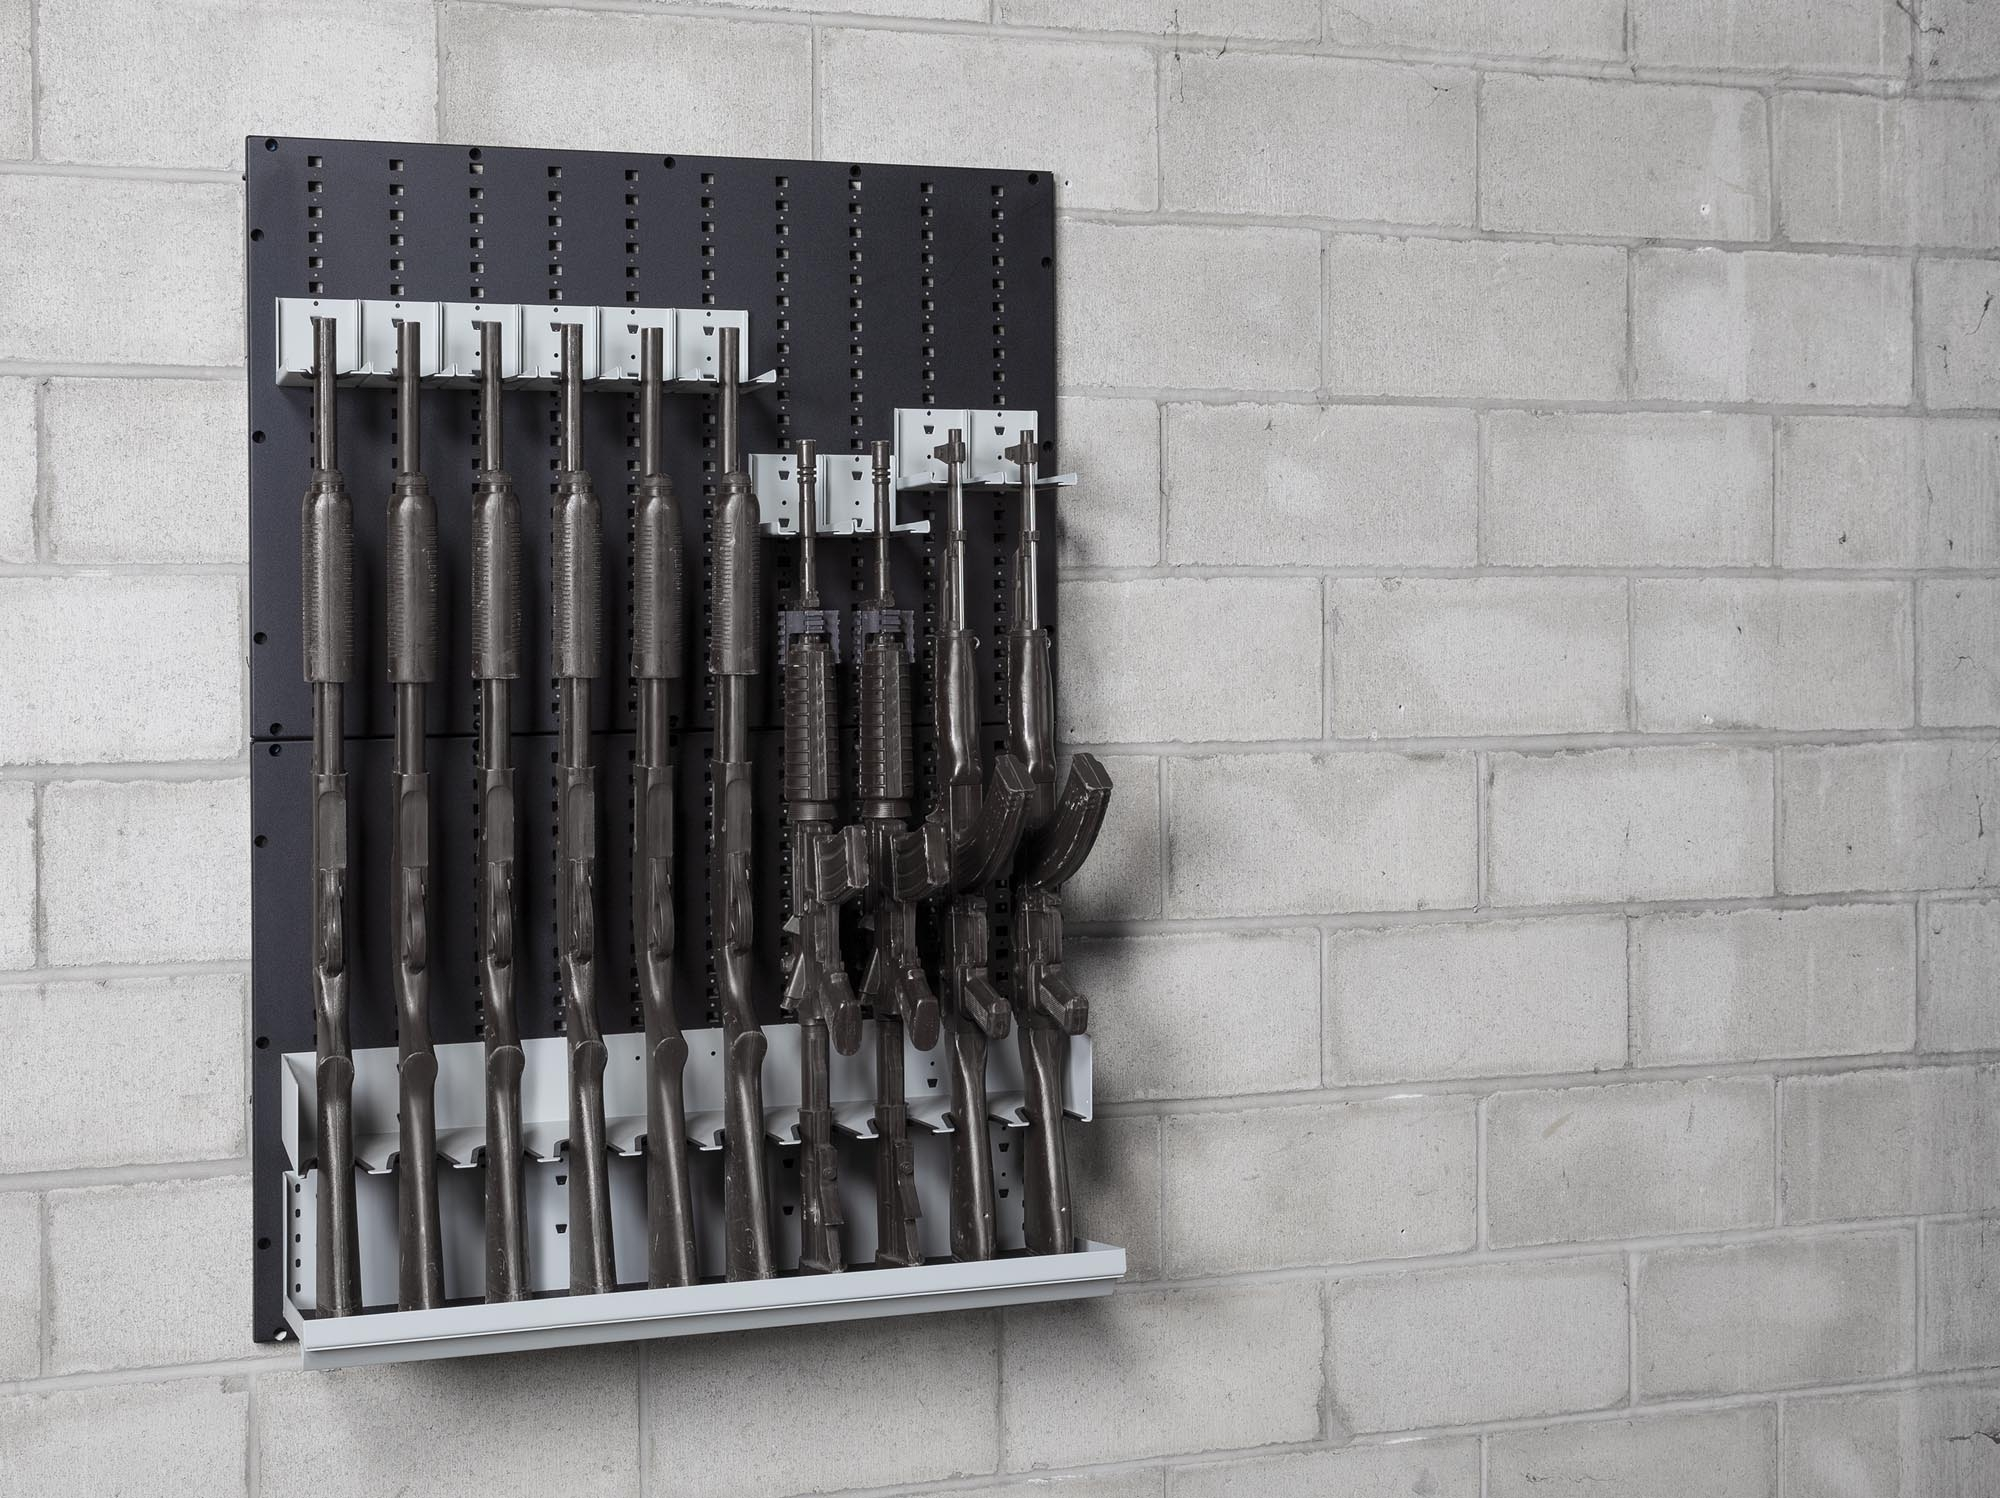 Weapon wall mount panels with weapons